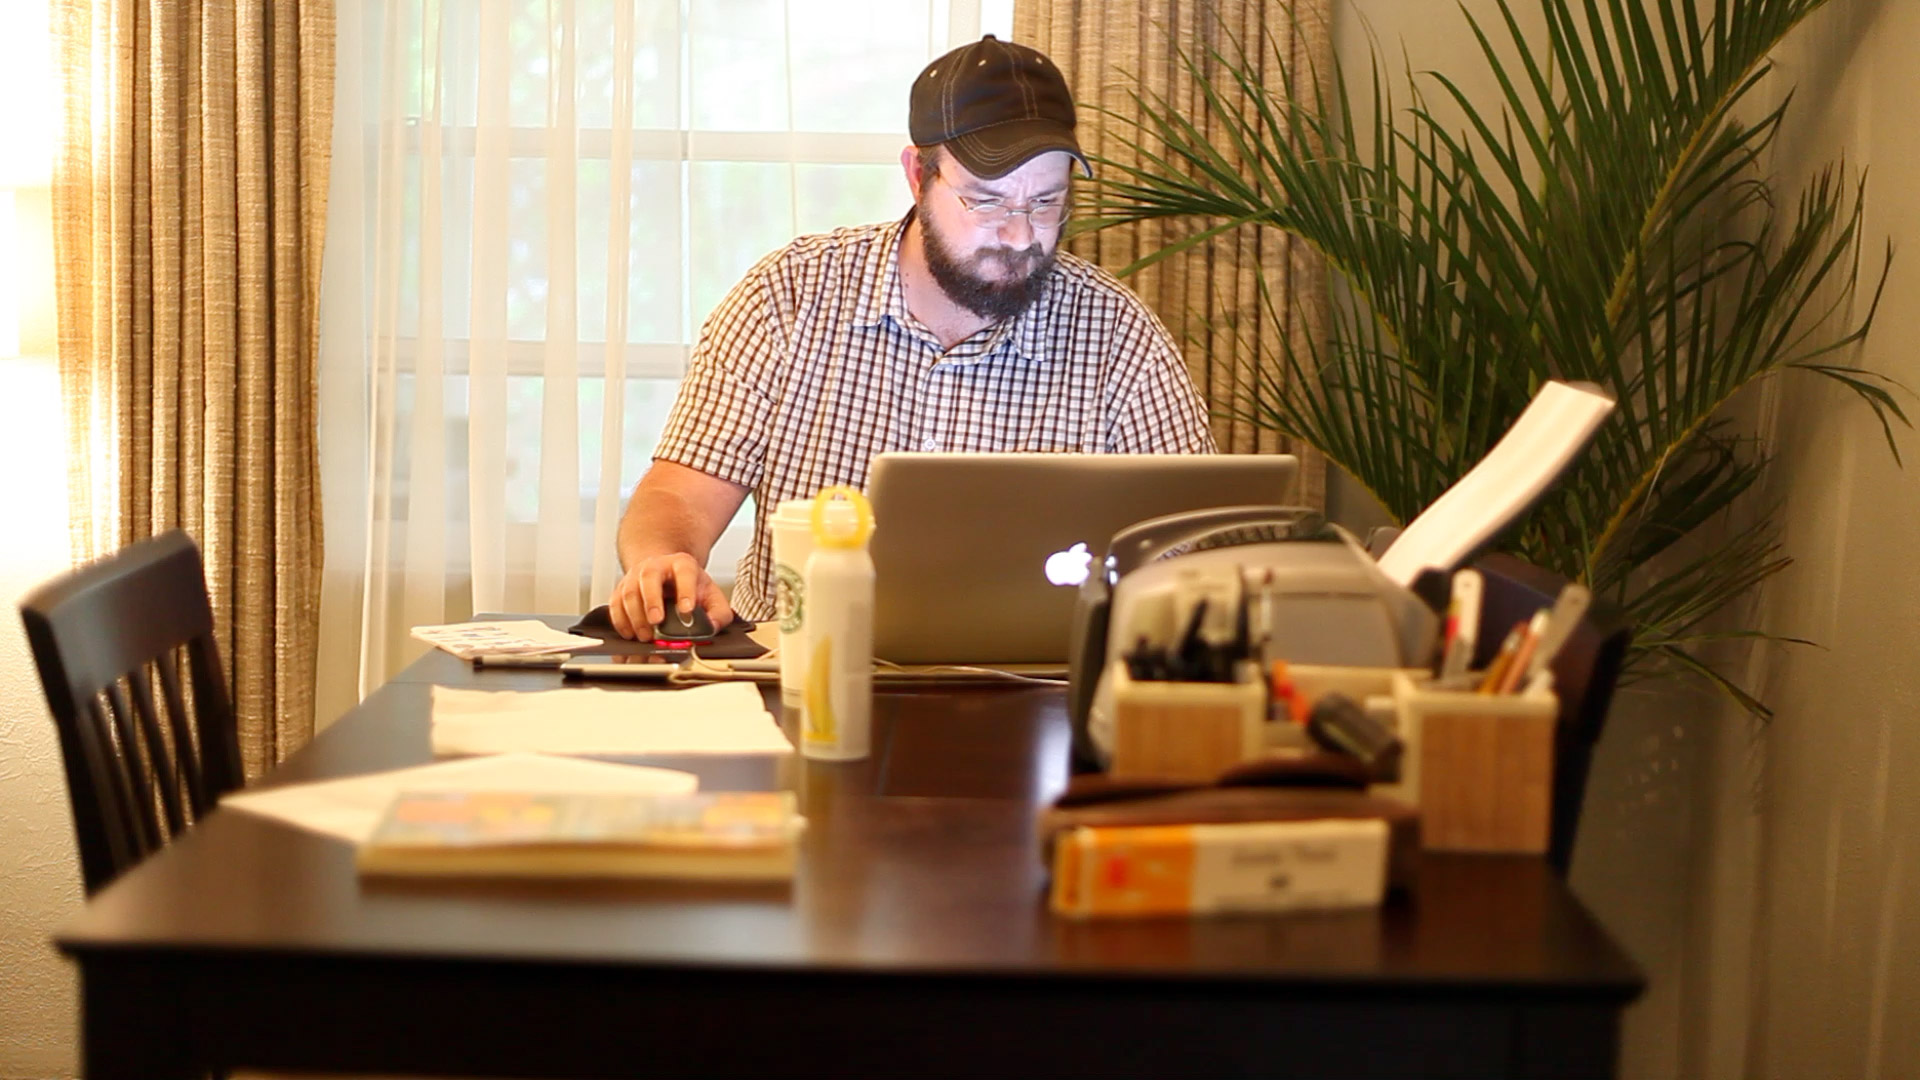 A man works on a laptop